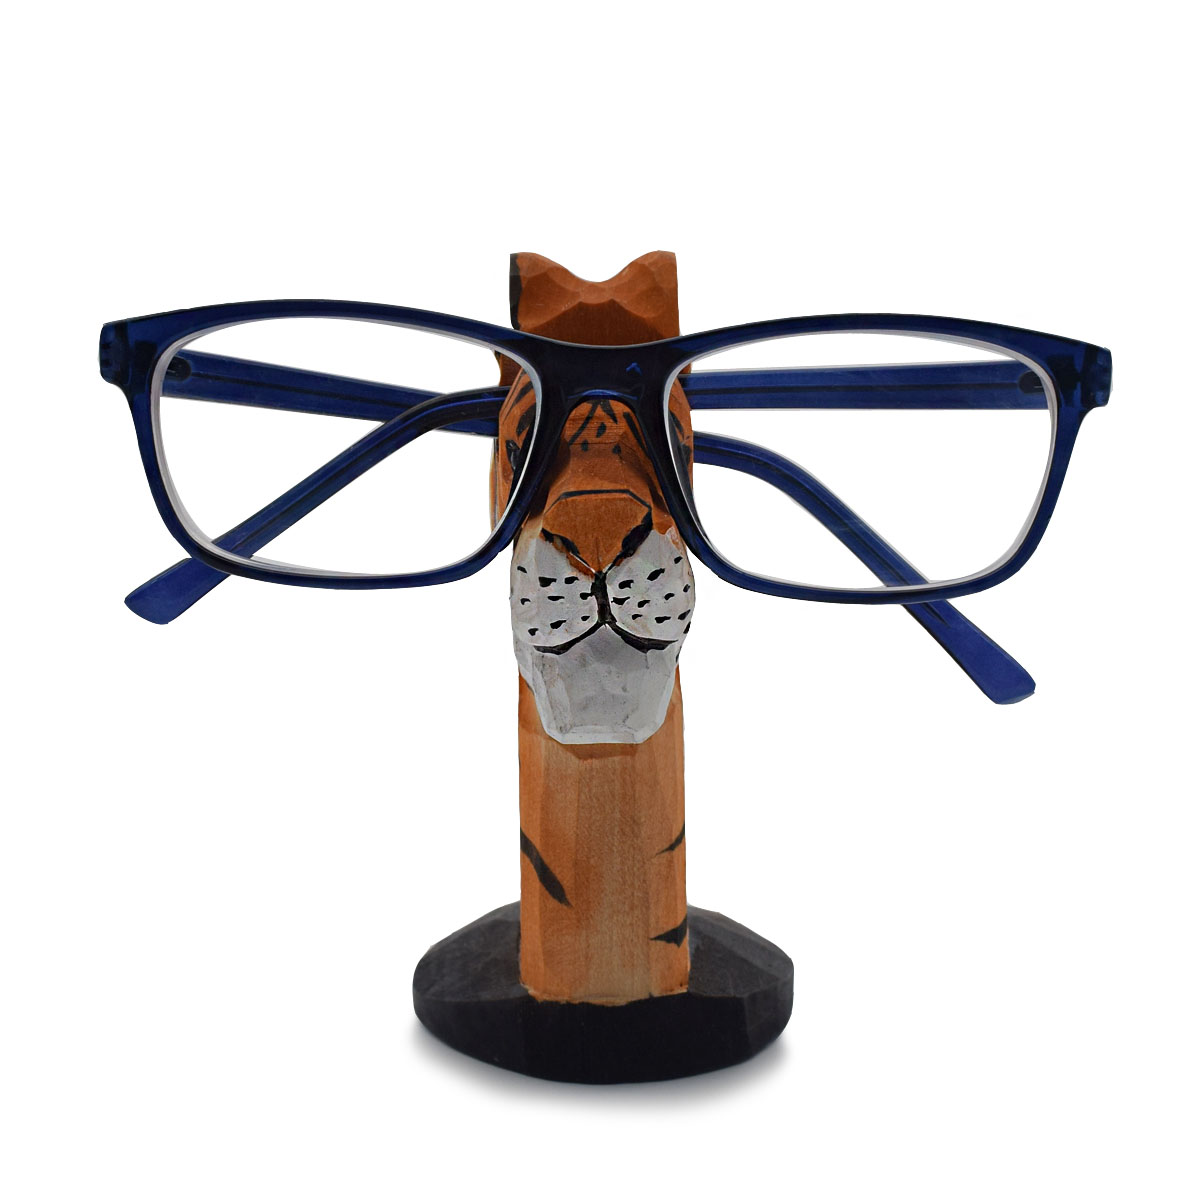 5f68cd756d6ee Handmade Wood Eyeglass Storage Holder 3D Tiger Glasses Display Stand  Organizer